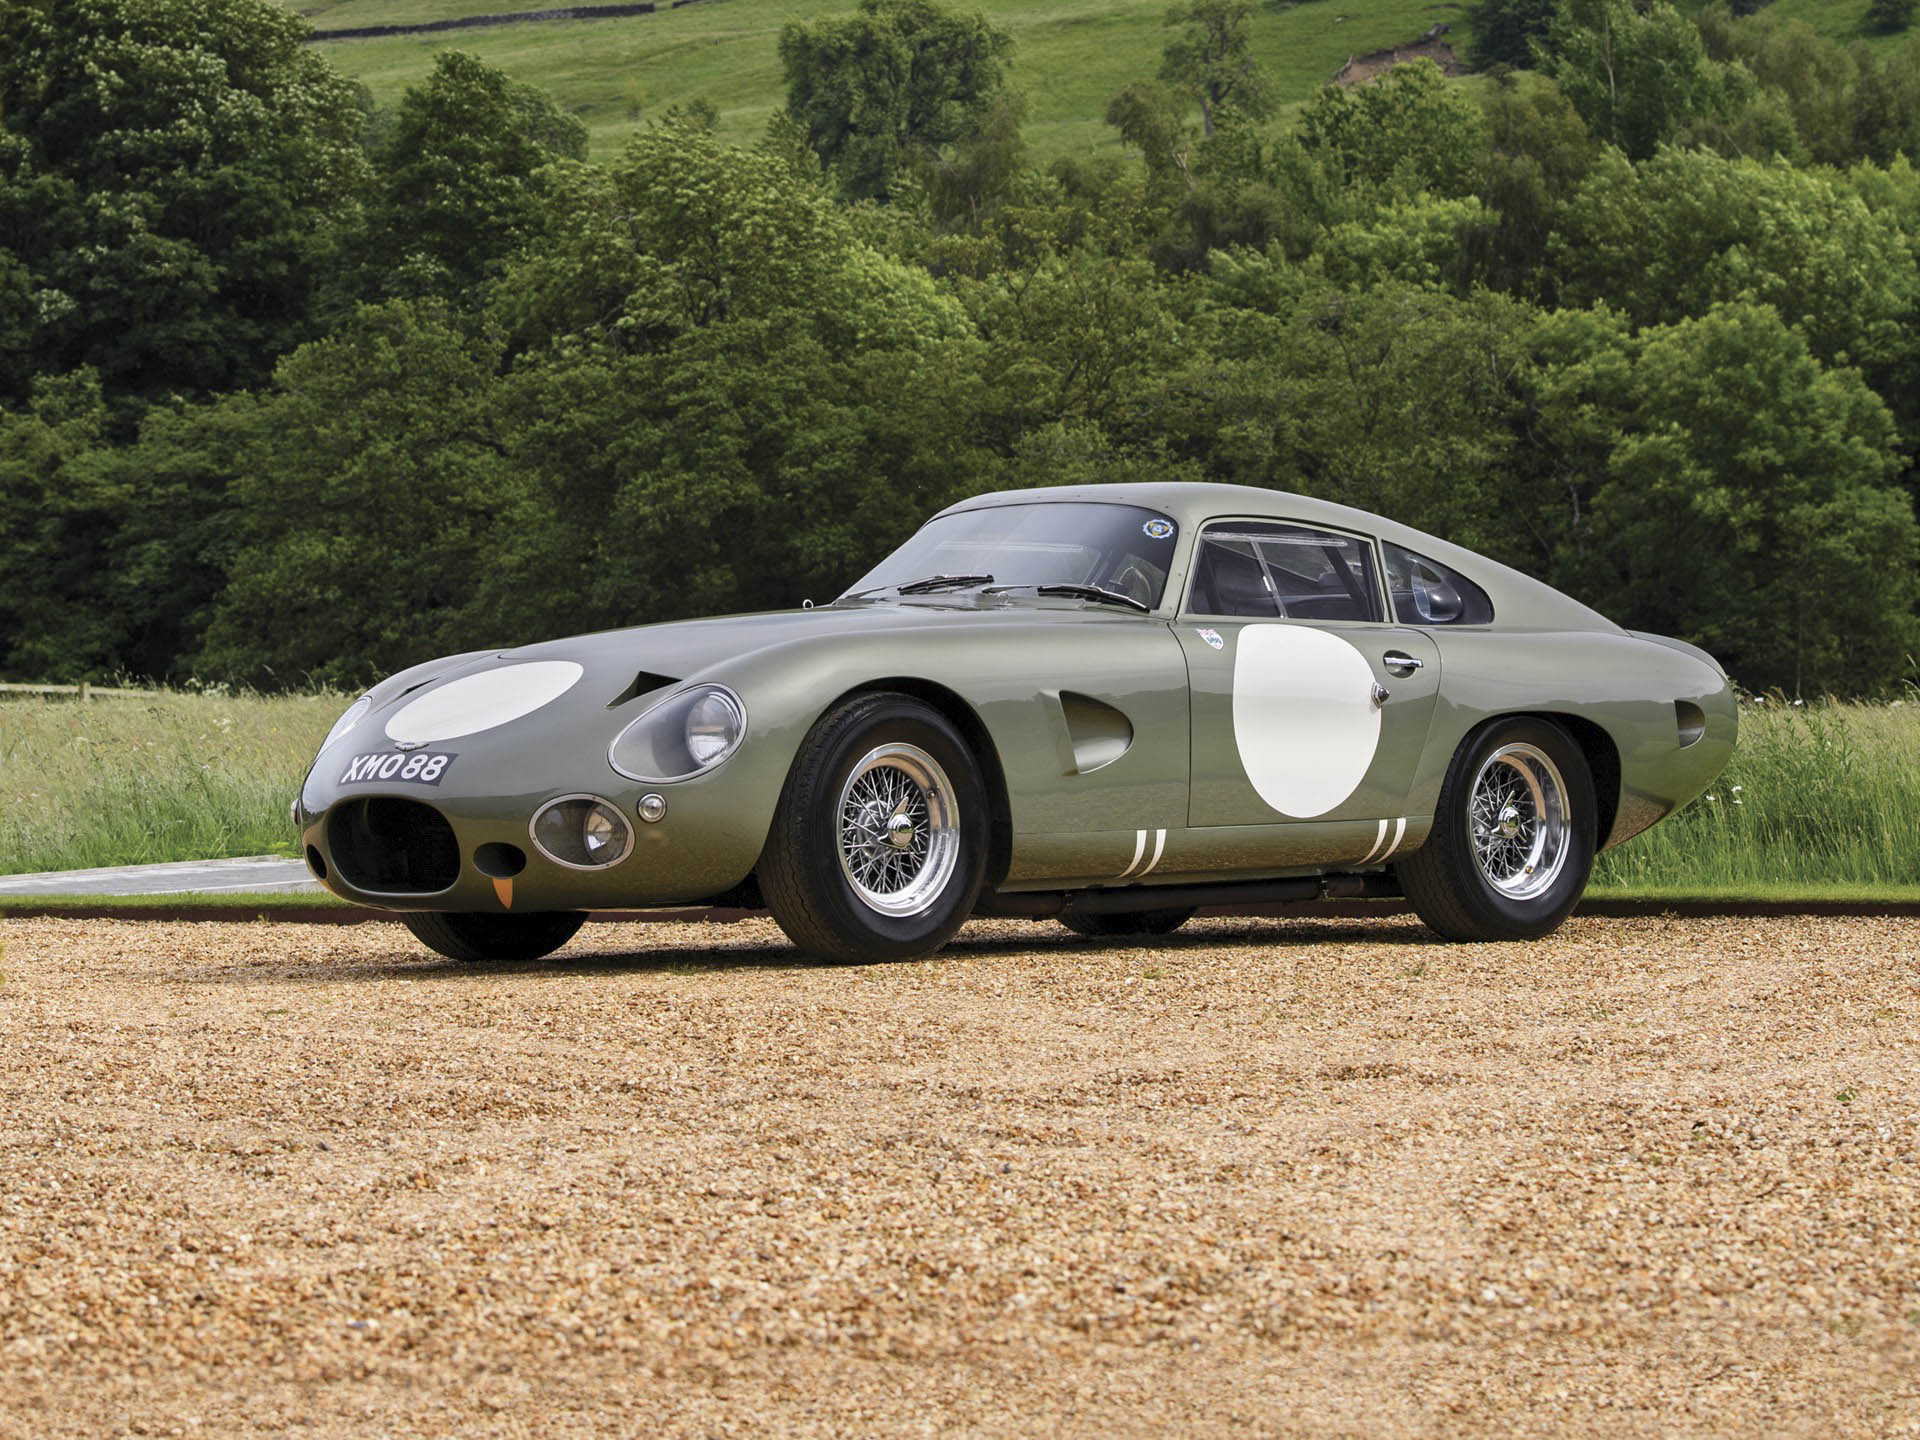 1963 Aston Martin DP215 Grand Touring Competition Prototype front 3/4